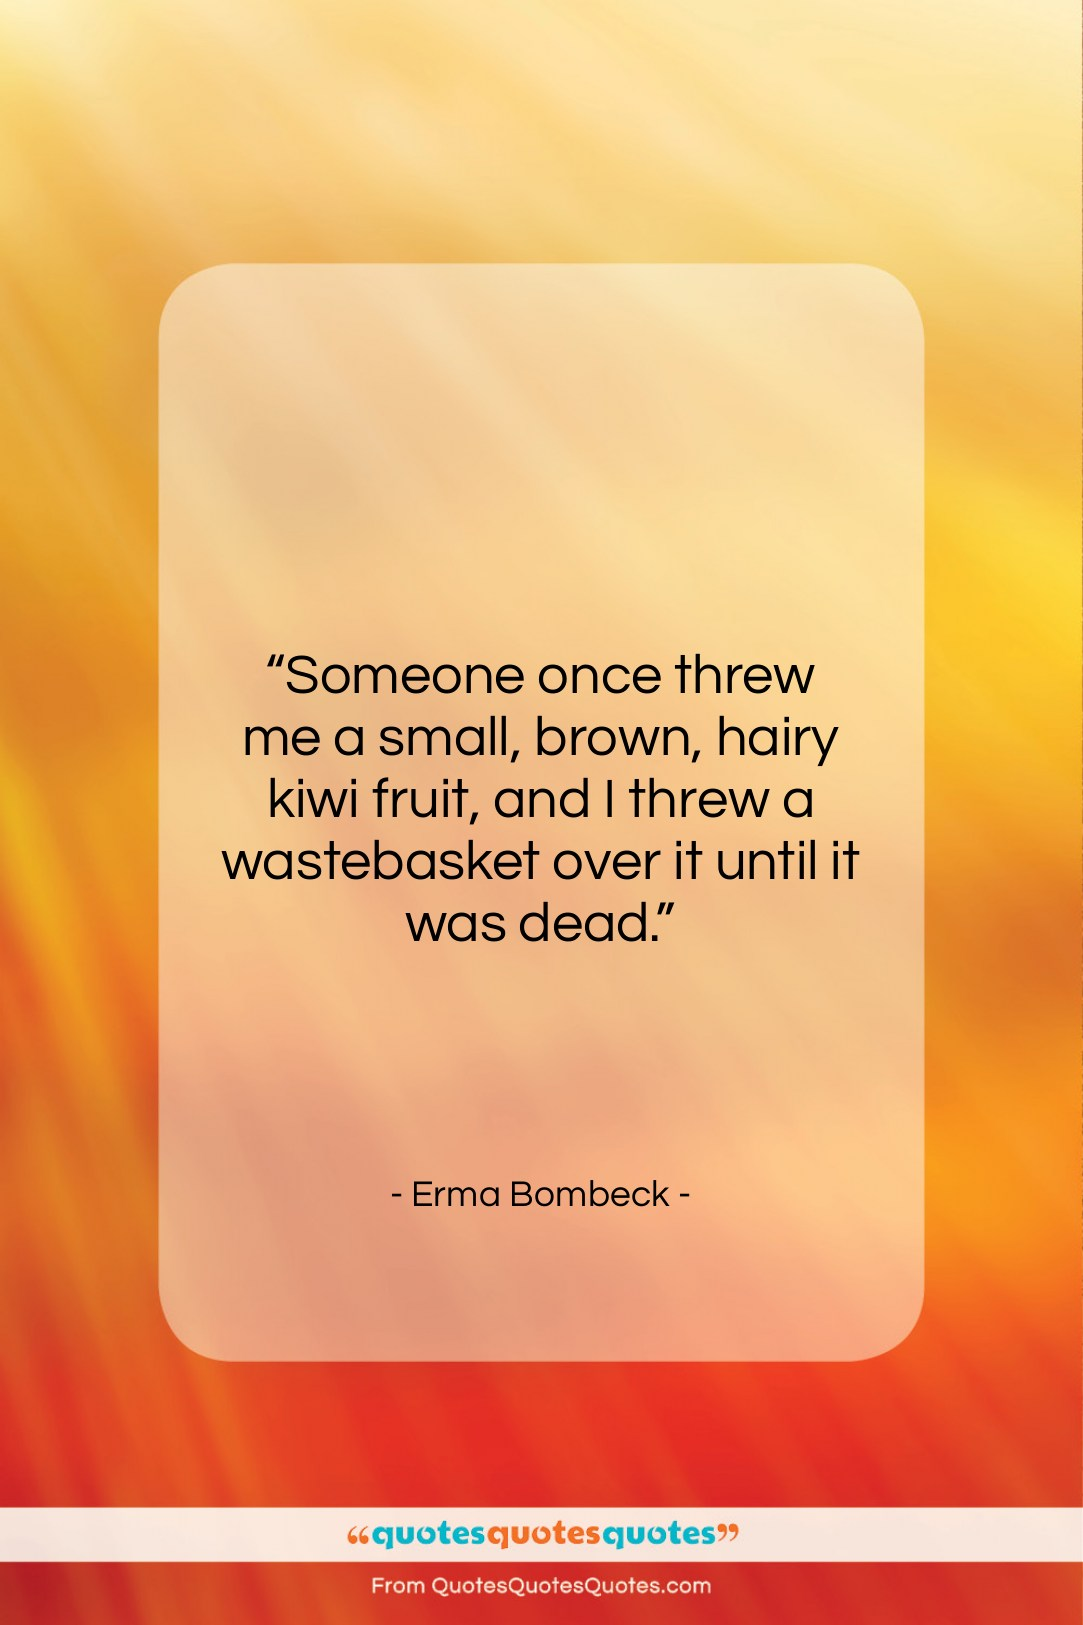 """Erma Bombeck quote: """"Someone once threw me a small, brown,…""""- at QuotesQuotesQuotes.com"""